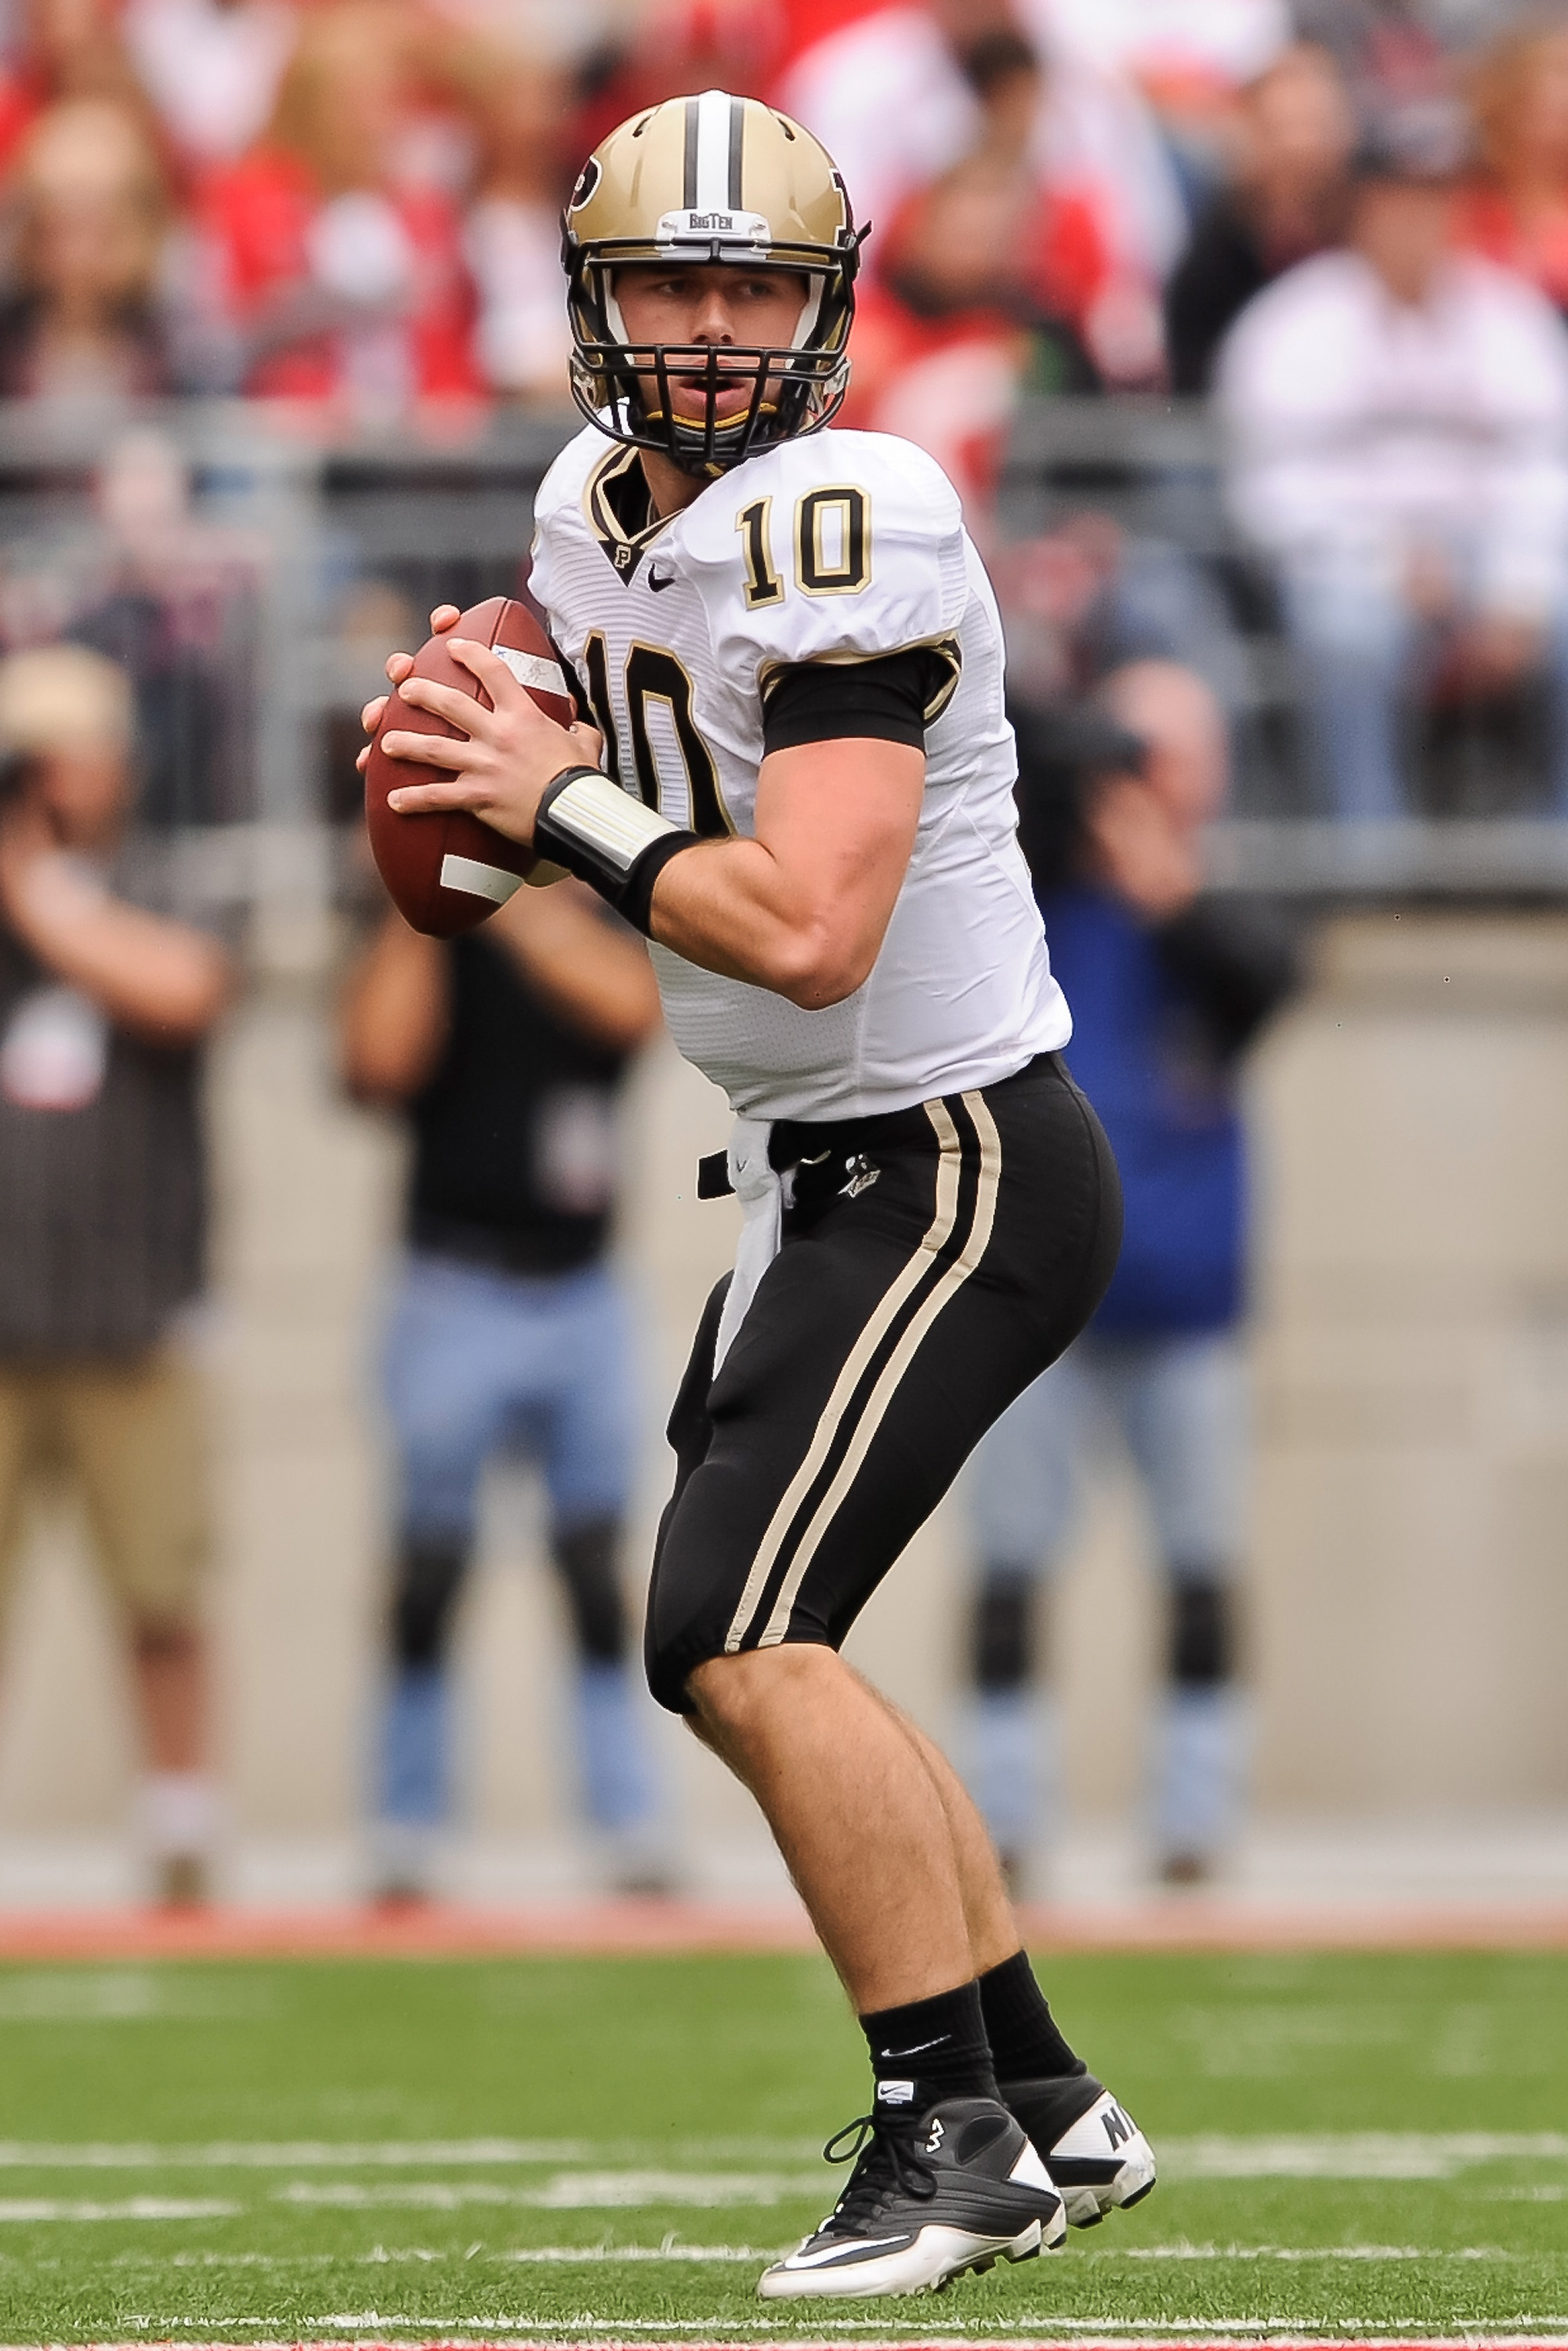 COLUMBUS, OH - OCTOBER 23:  Quarterback Sean Robinson #10 of the Purdue Boilermakers drops back to pass against the Ohio State Buckeyes at Ohio Stadium on October 23, 2010 in Columbus, Ohio.  (Photo by Jamie Sabau/Getty Images)